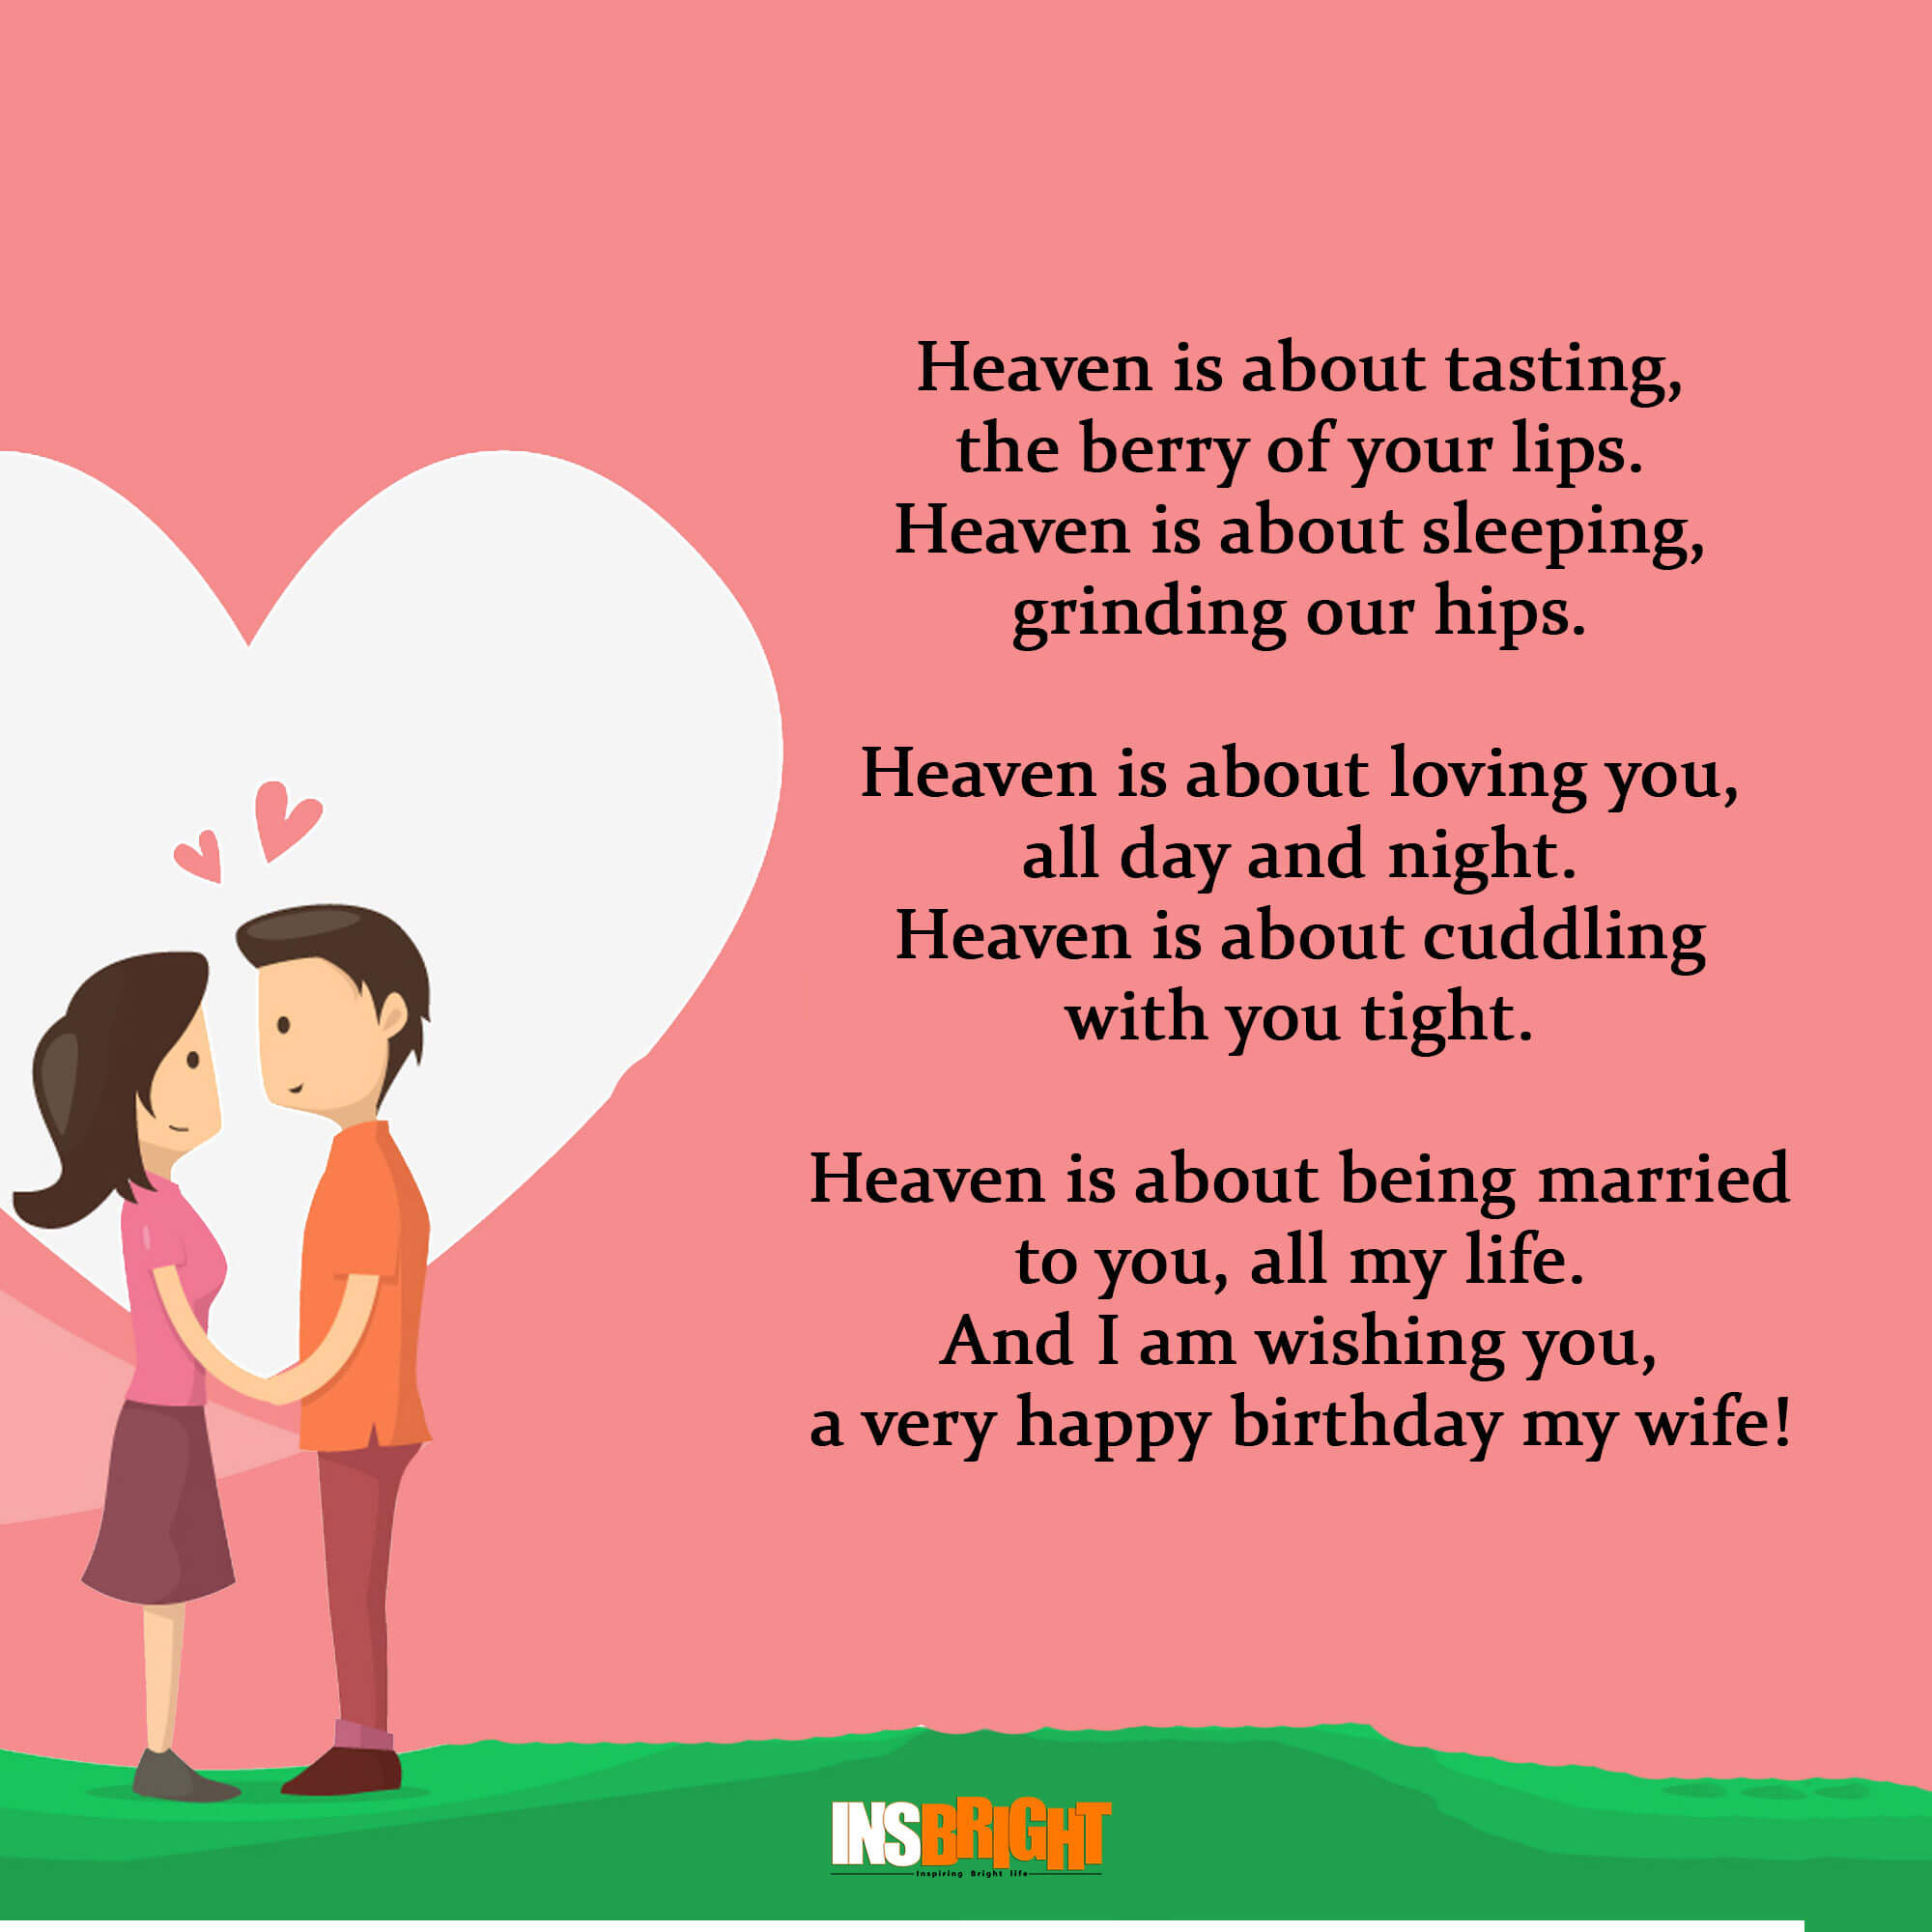 happy day of my life Details about poems on mother's day, happy mothers day poems, mothers day poems by children, mothers day poems for kids,  as i look back on my life.